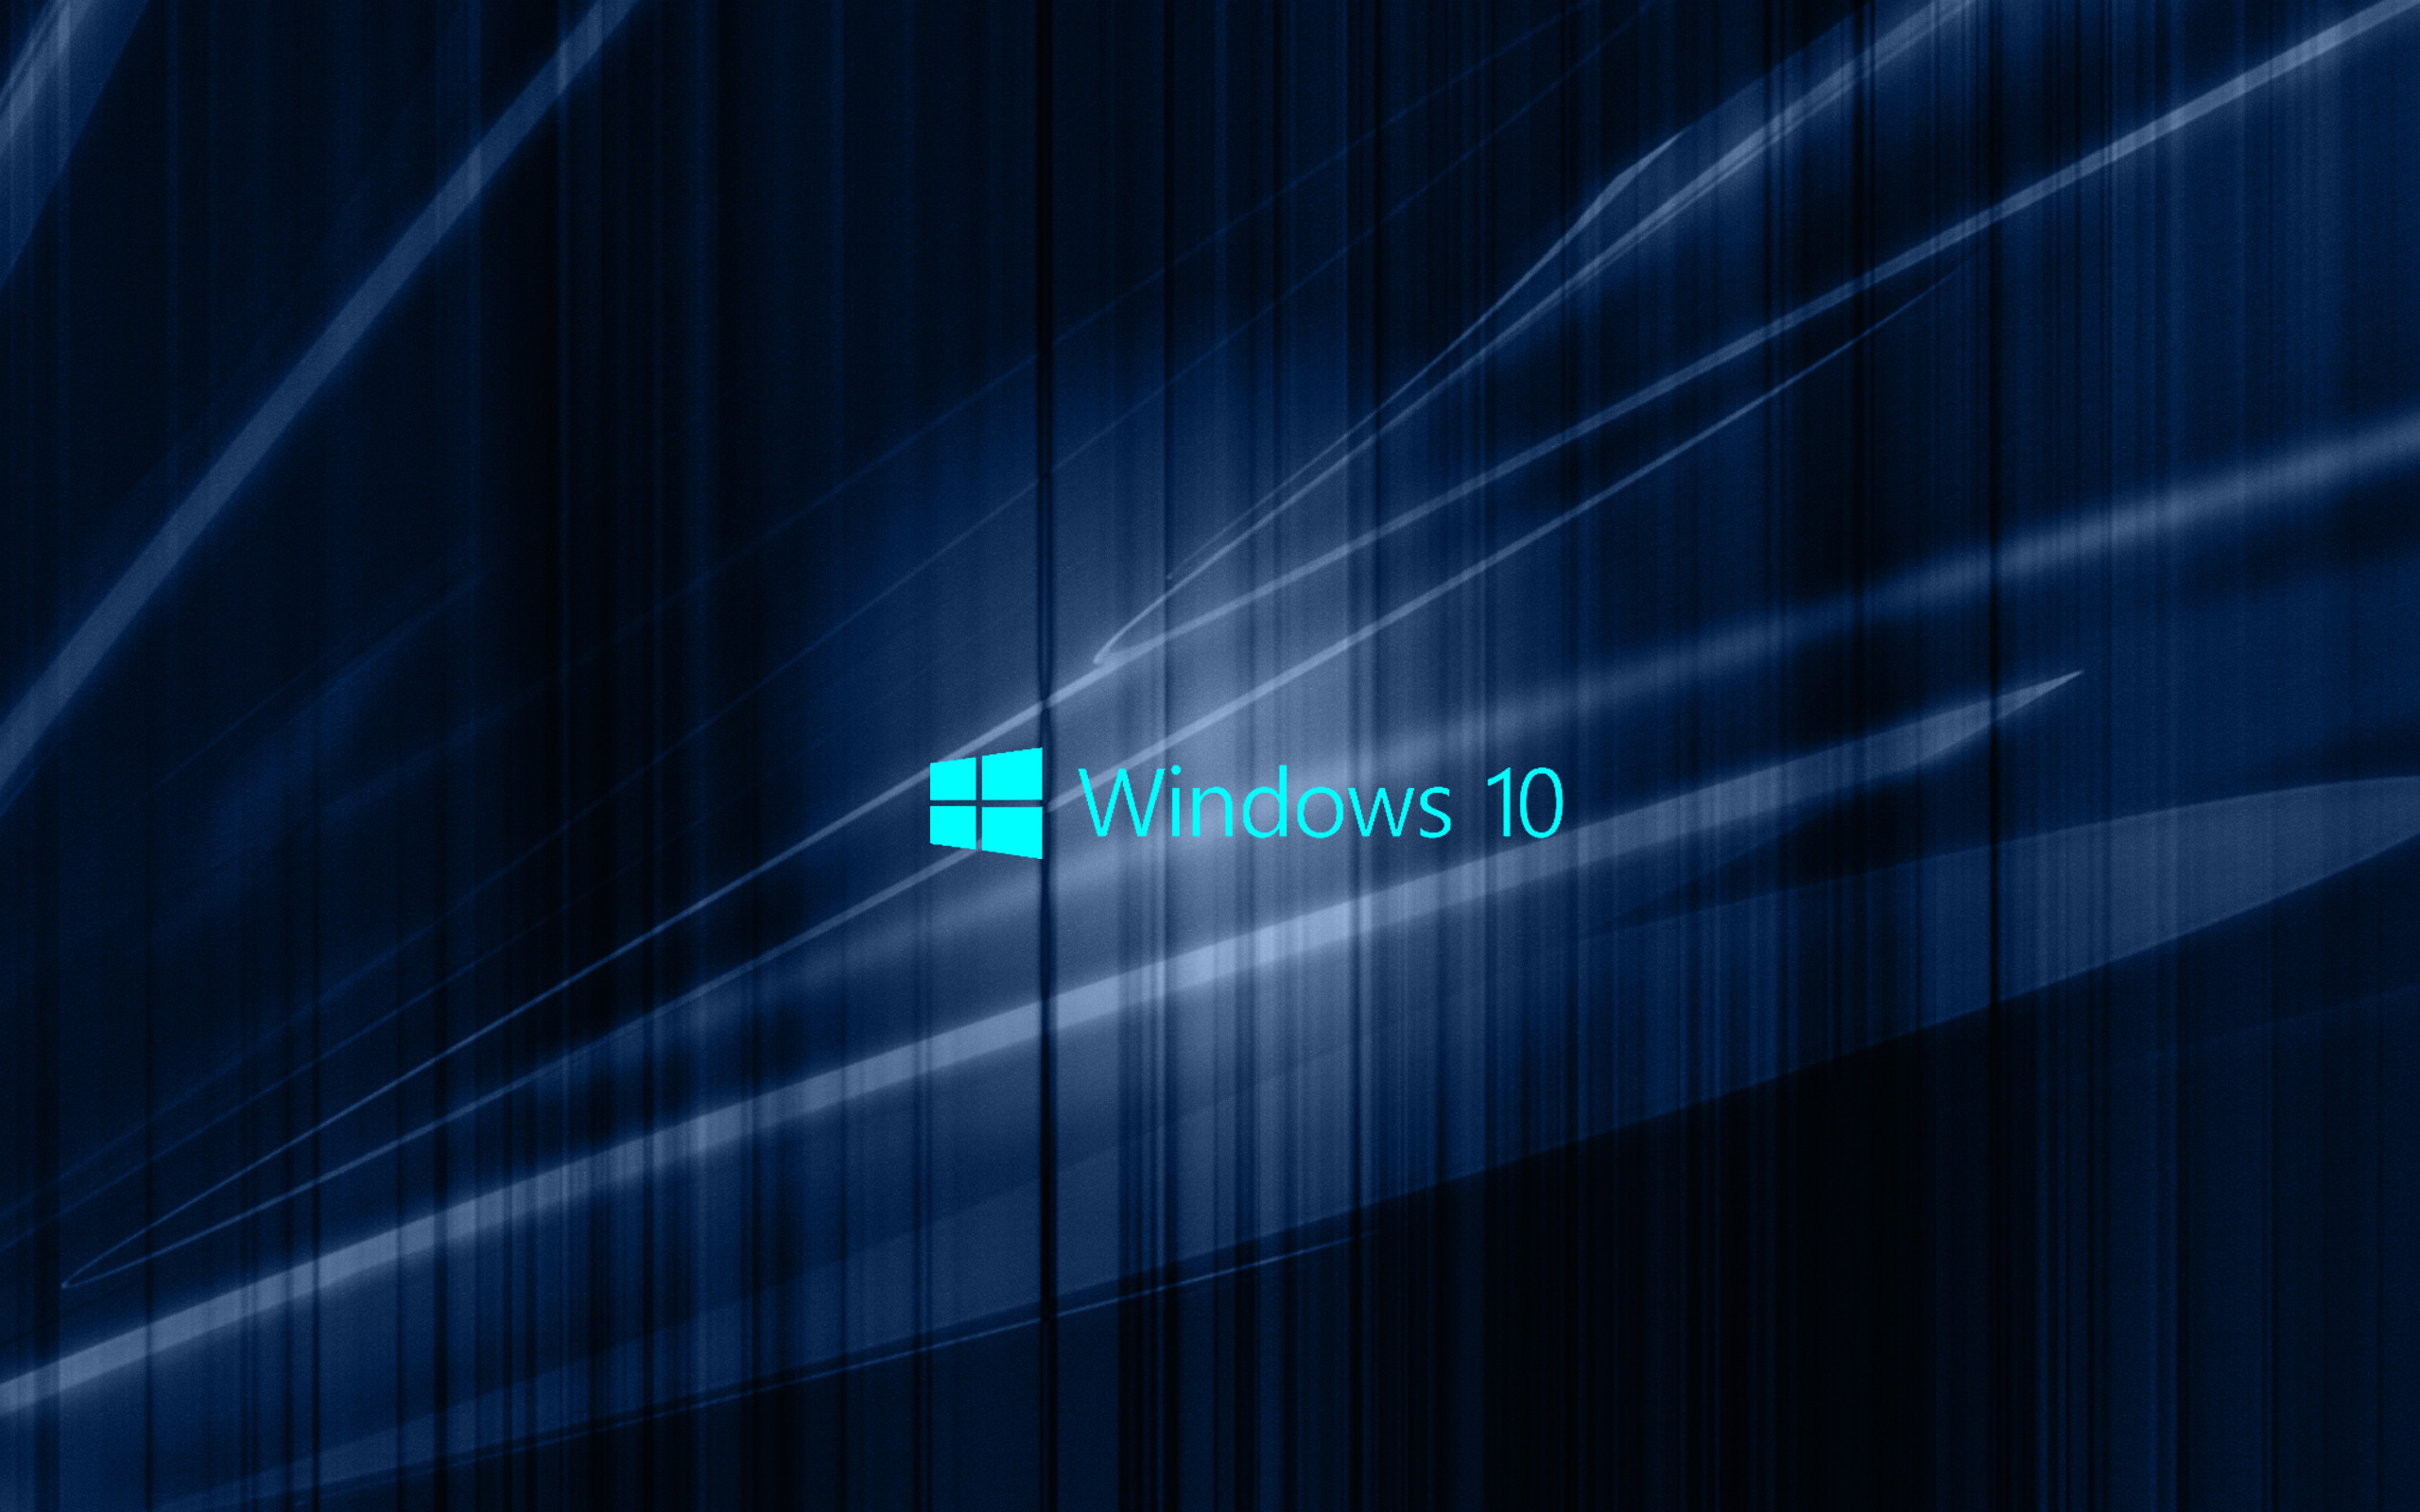 Windows 10 Wallpaper with Blue Abstract Waves   HD Wallpapers for Free